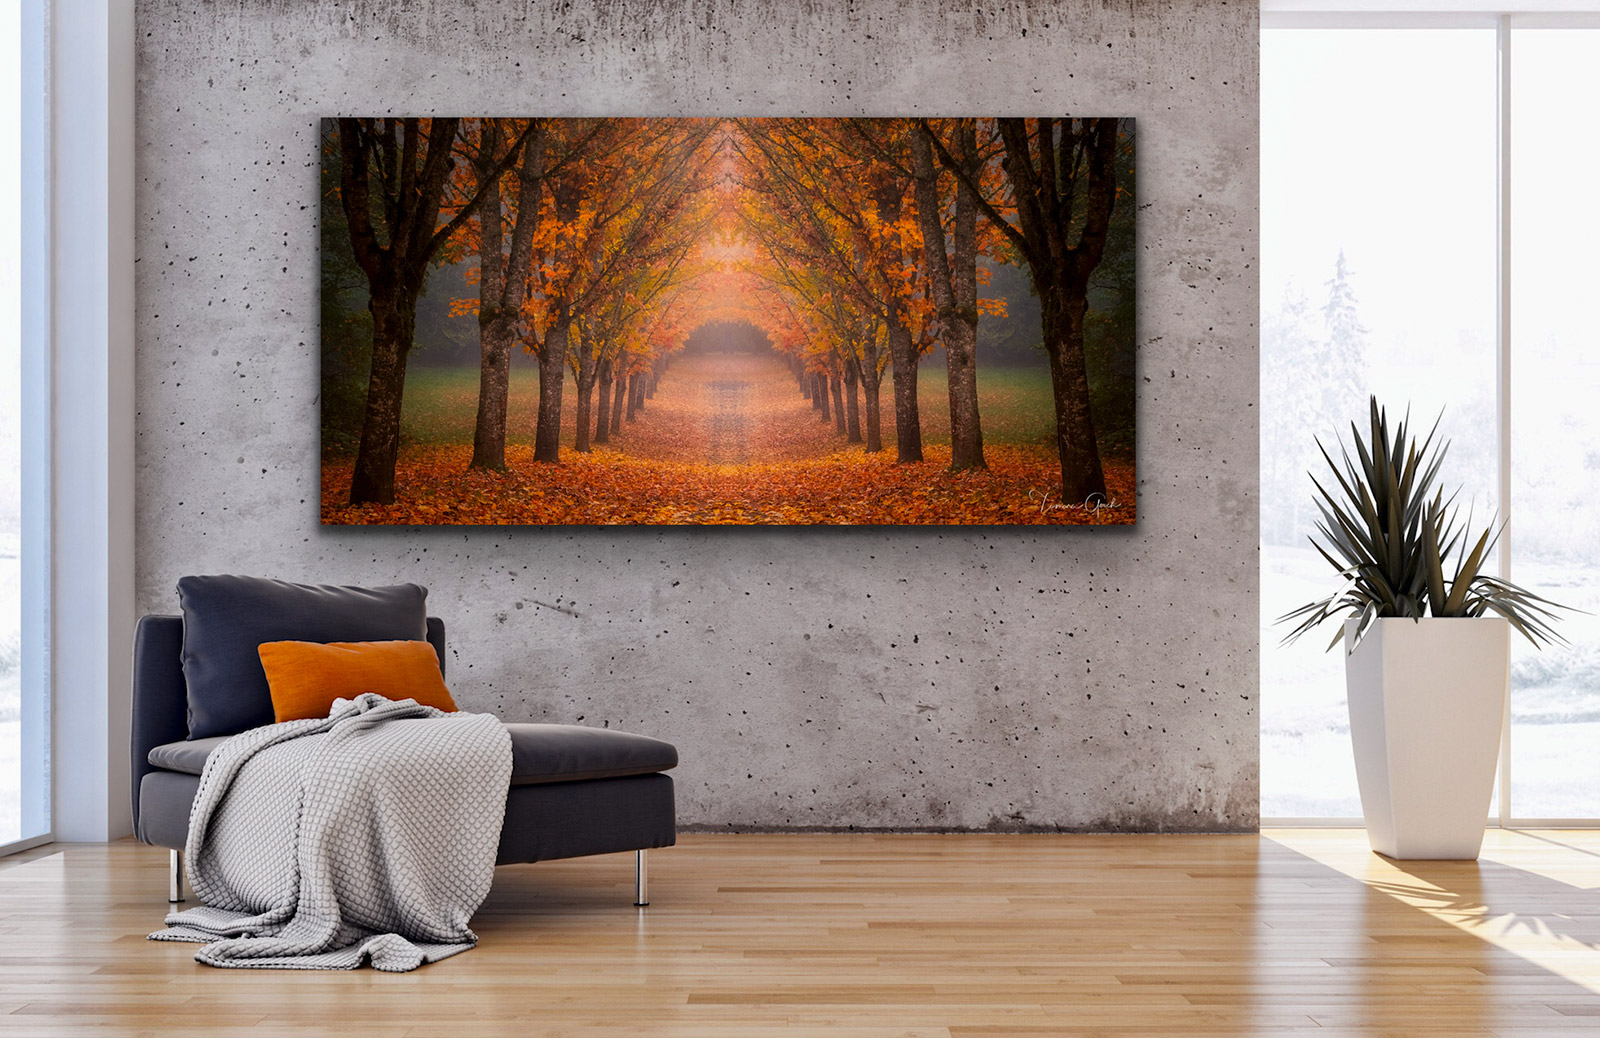 wall, home, decor, interior, design, real estate, staging, plexiglass, acrylic, aluminum, metal, paper, museum, quality, autumn, fall, color, trees, drive, lane, road, room, photo